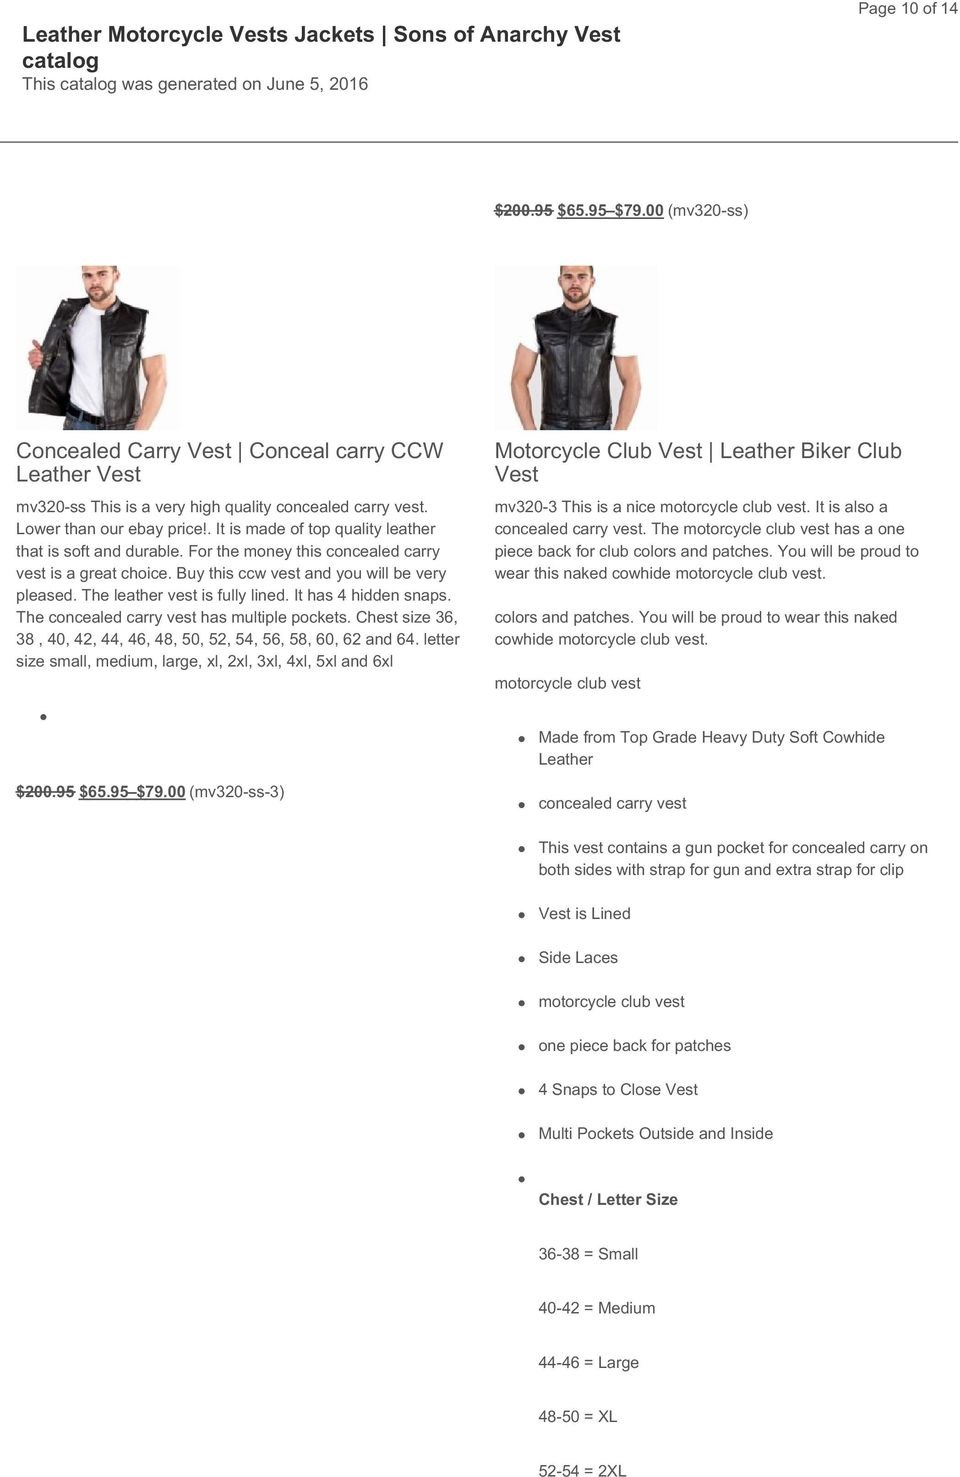 The leather vest is fully lined. It has 4 hidden snaps. The concealed carry vest has multiple pockets. Chest size 36, 38, 40, 42, 44, 46, 48, 50, 52, 54, 56, 58, 60, 62 and 64.